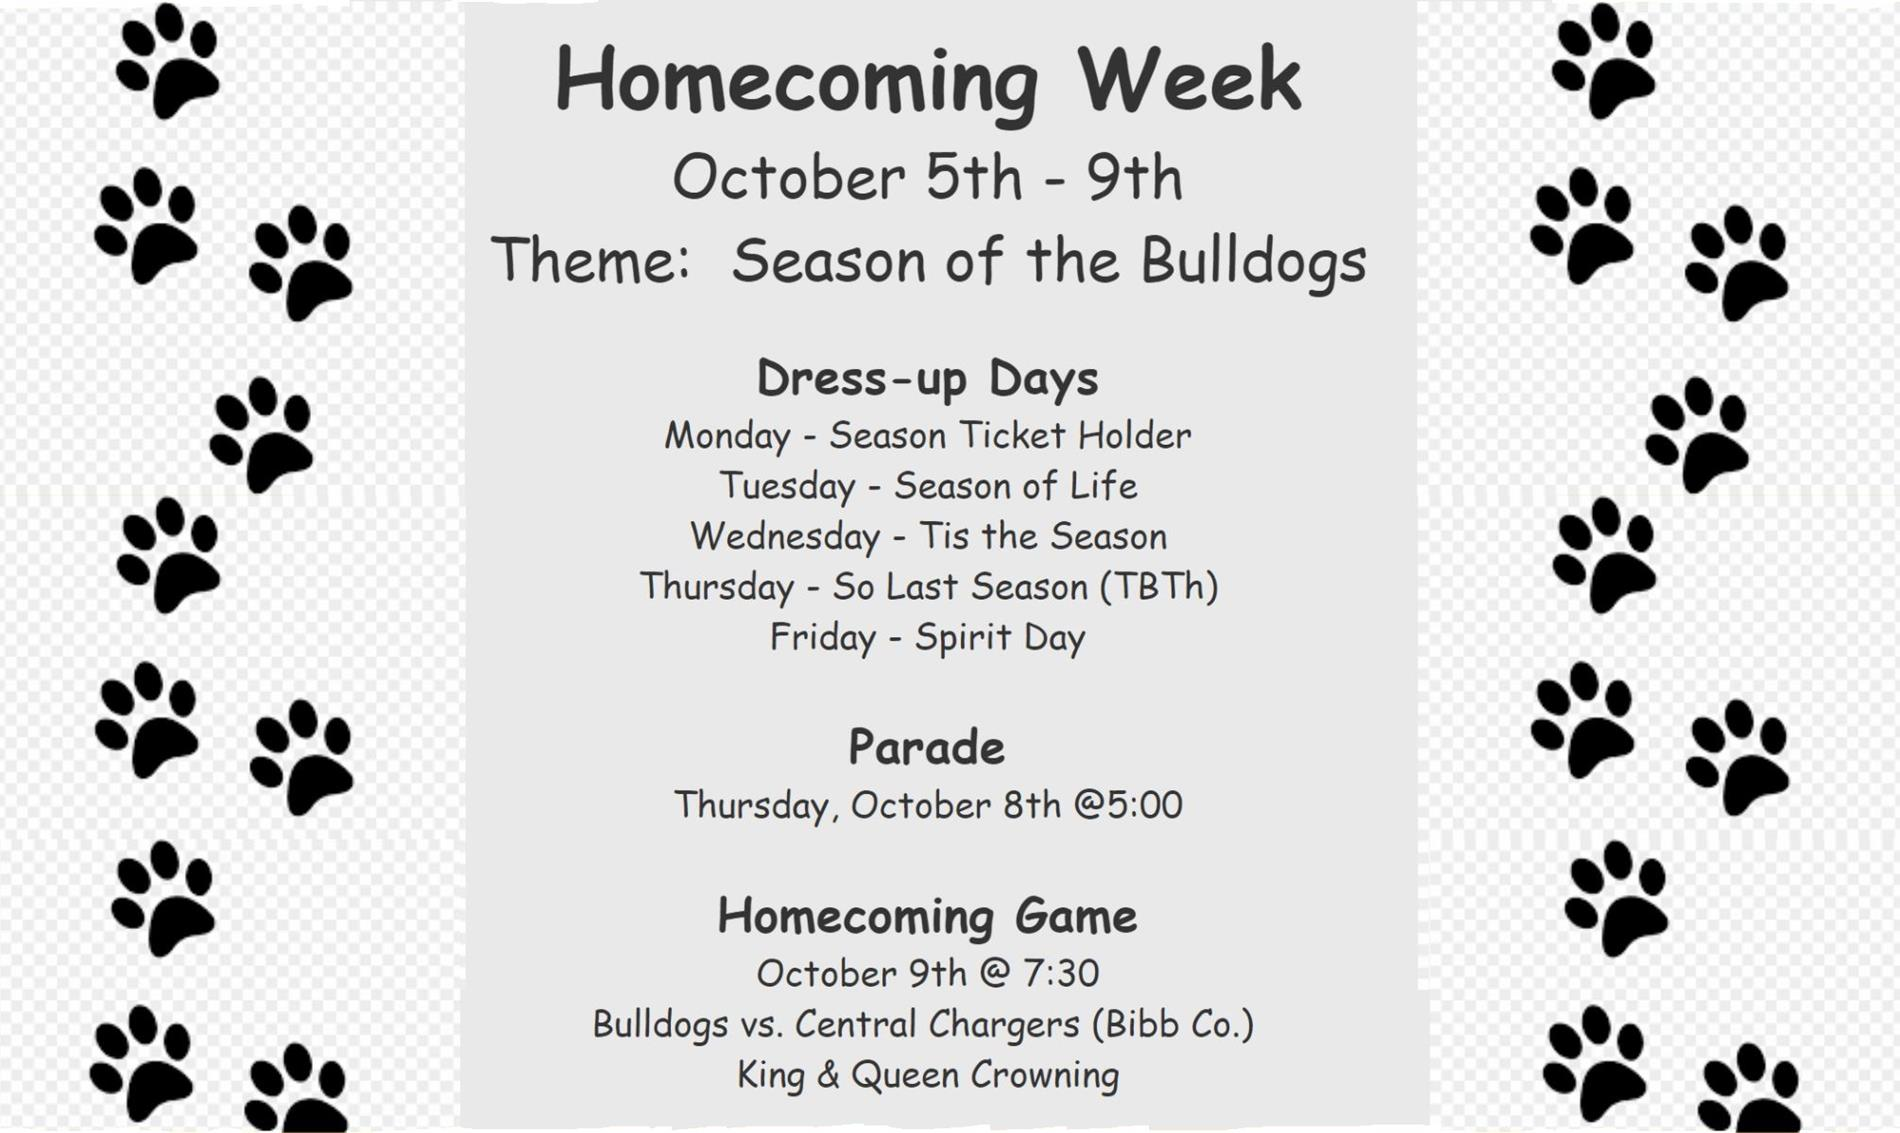 Homecoming Week 2020